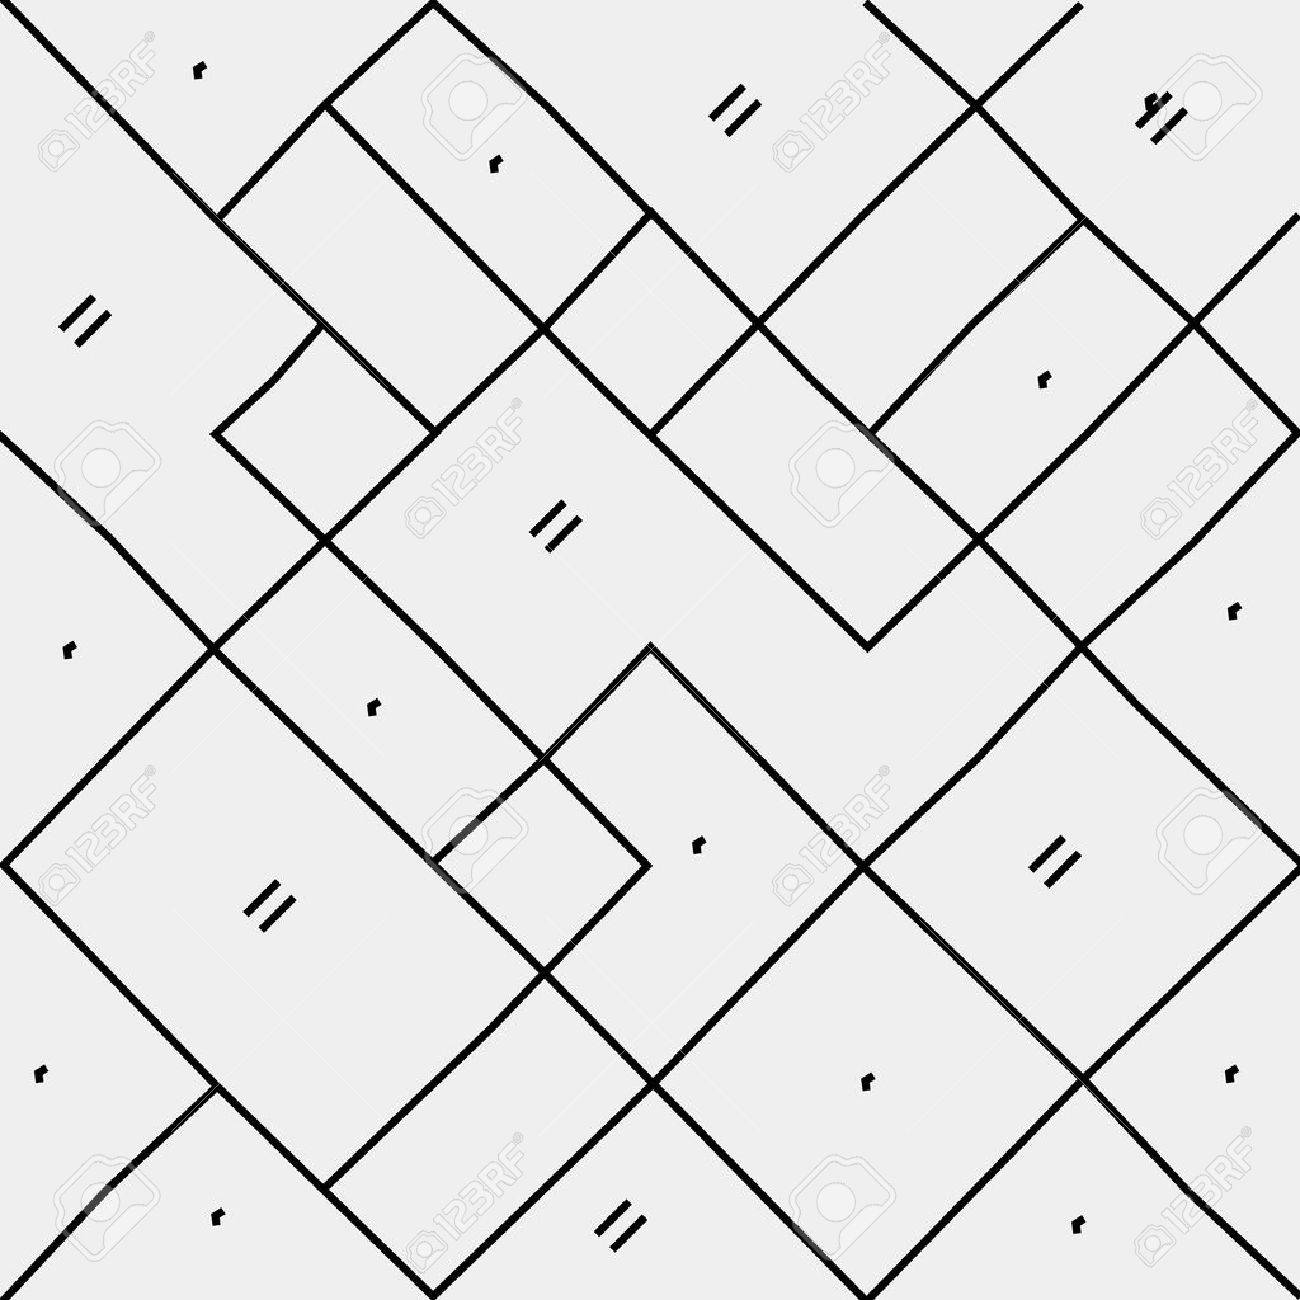 Geometric Simple Black And White Minimalistic Pattern Diagonal